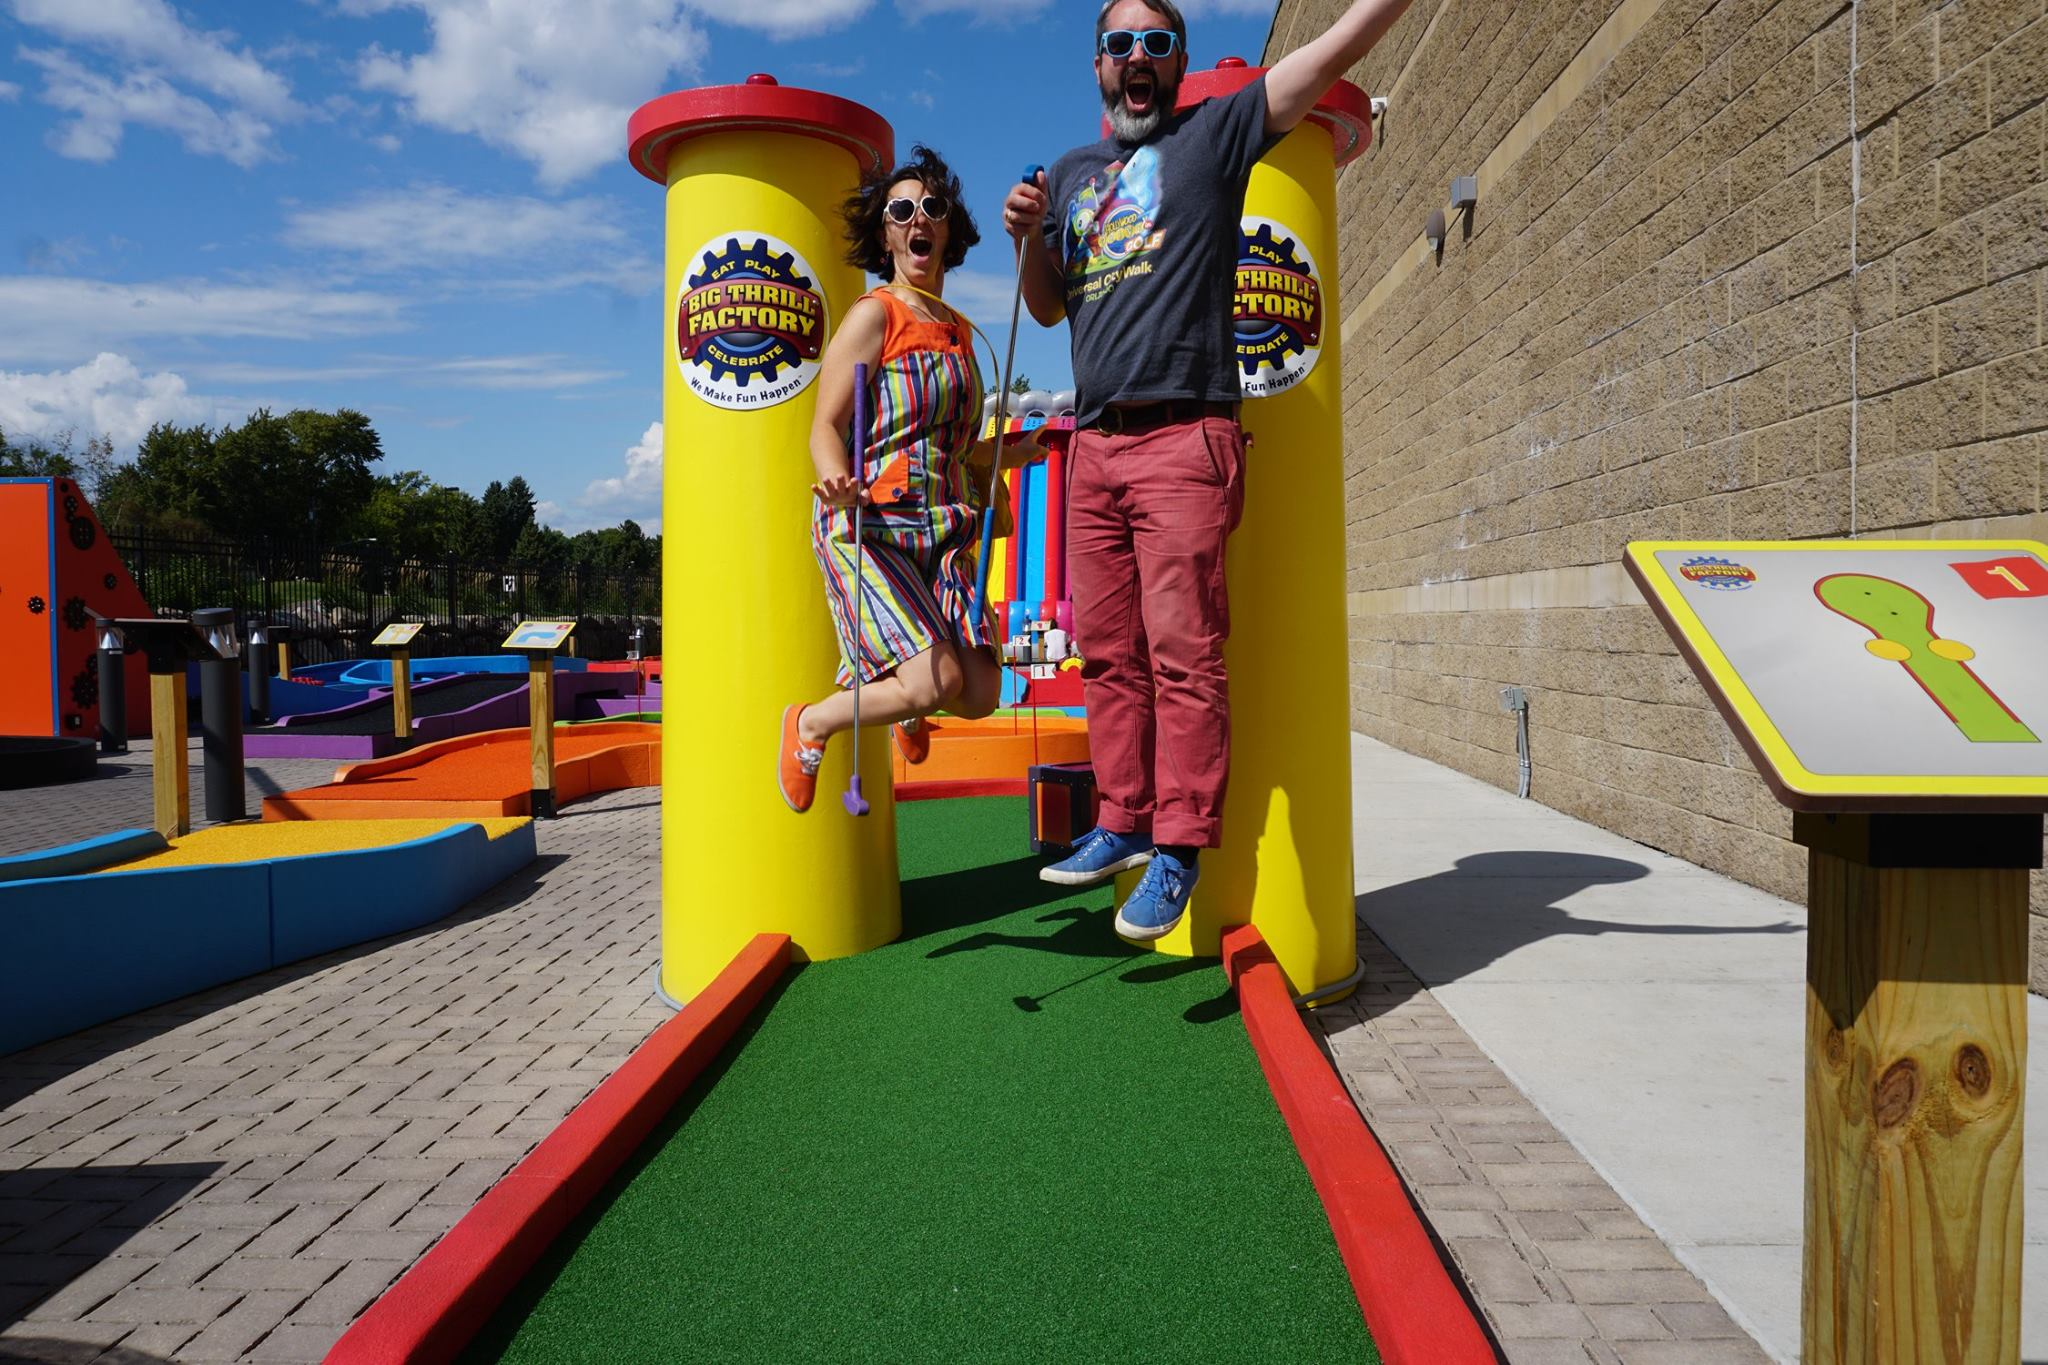 """A Couple of Putts"" Mr. Tee (Tom Loftus) & The Pink Putter (Robin Schwartzman) play, review & document their visit to Big Thrill Factory's signature mini golf course"